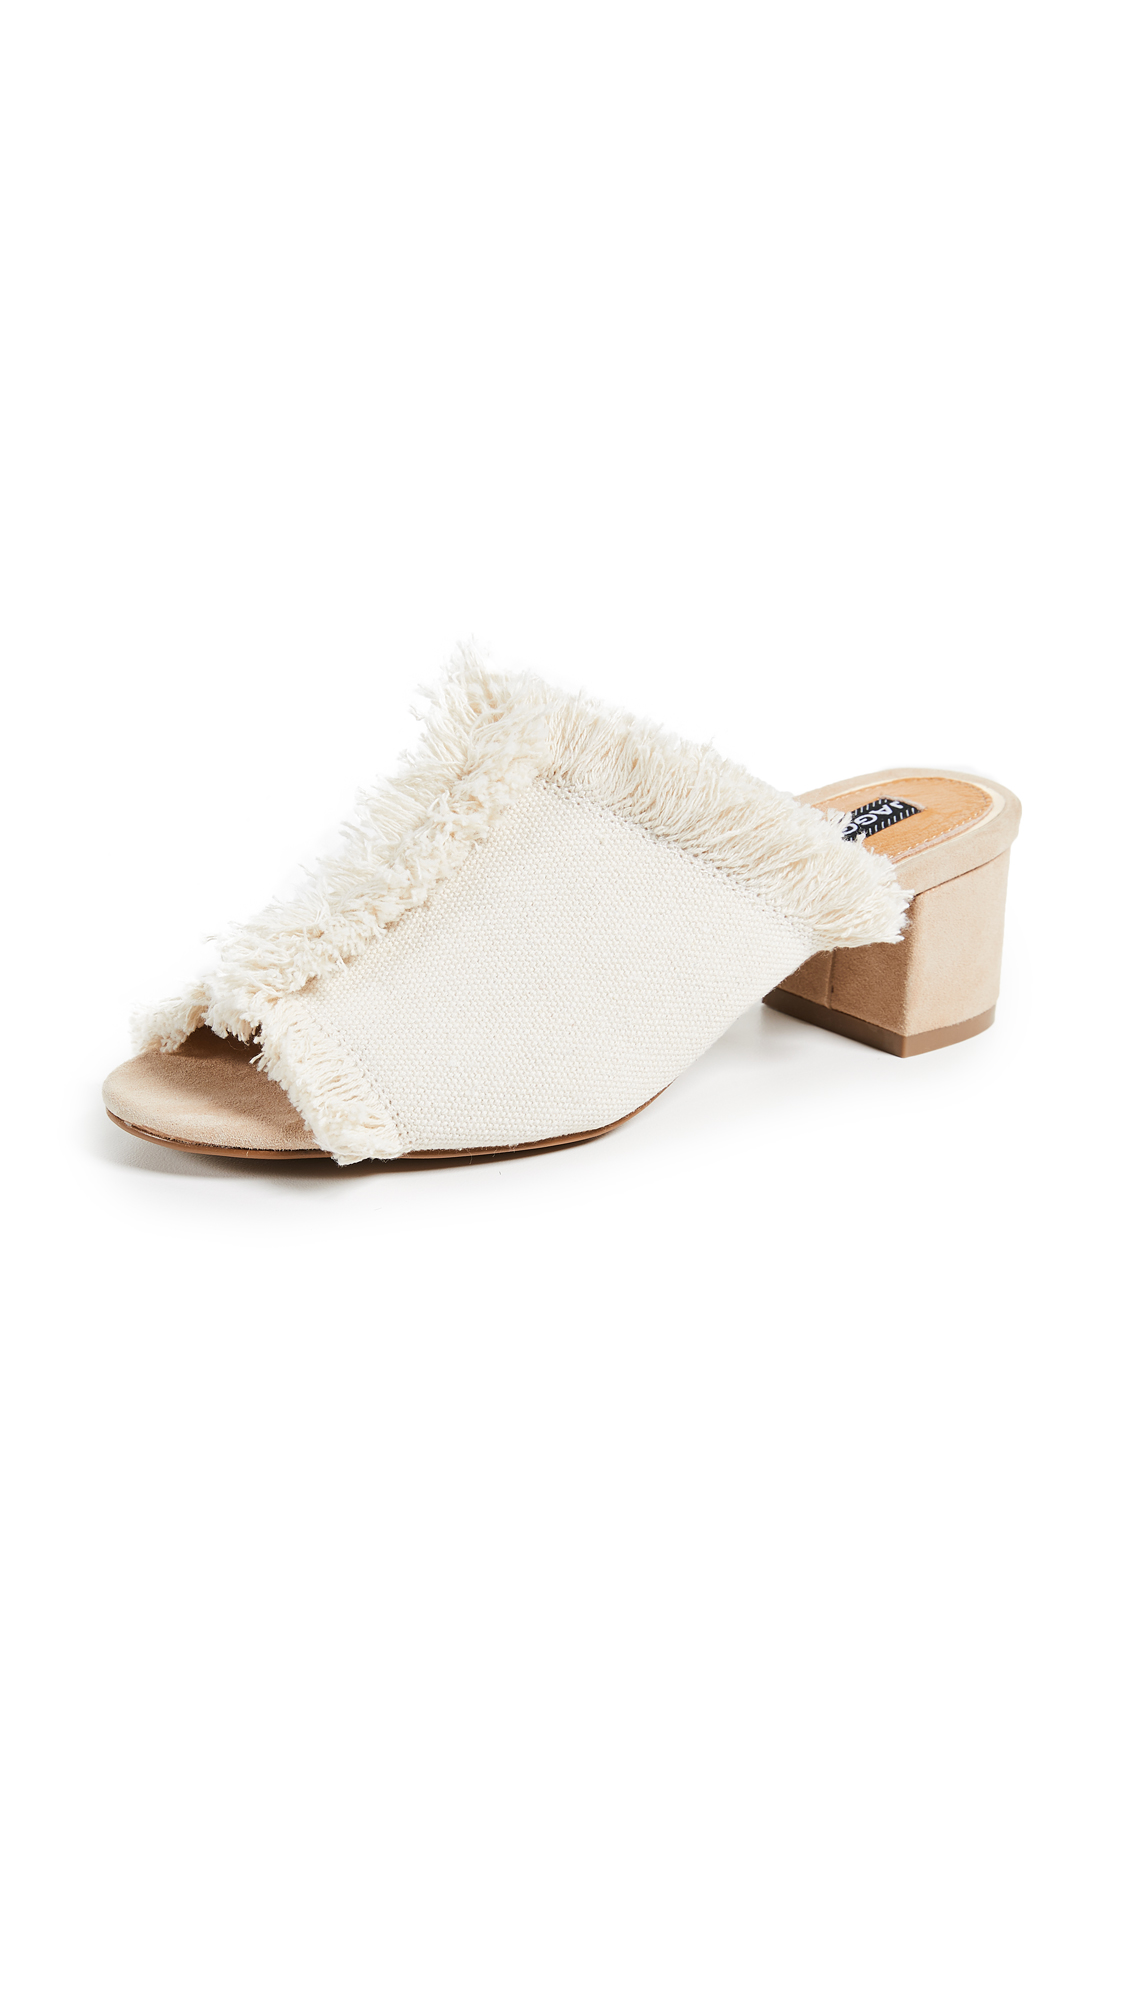 JAGGAR Resolve Block Heel Sandals - Oatmeal